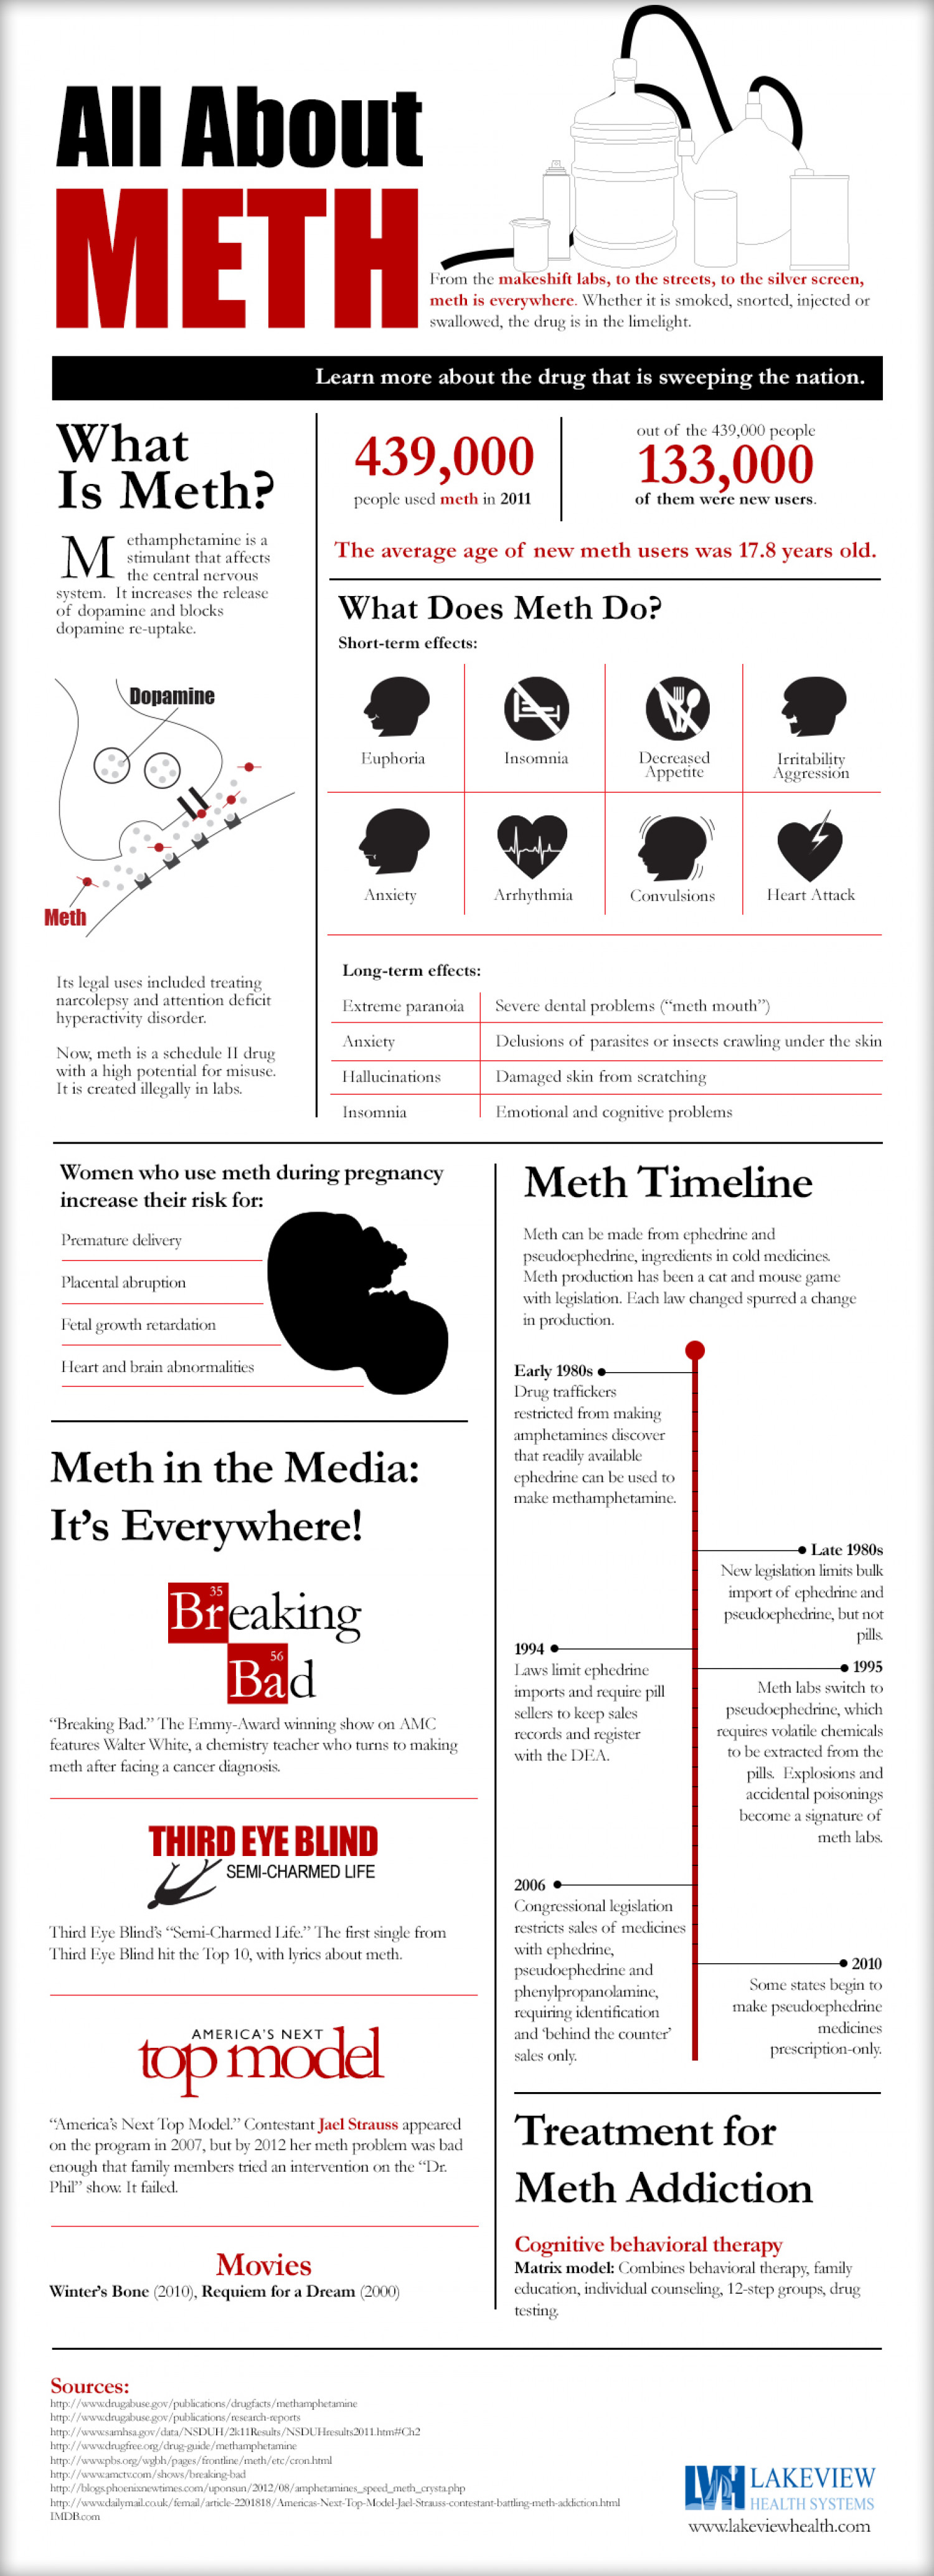 What is Methamphetamine? All About Meth Infographic